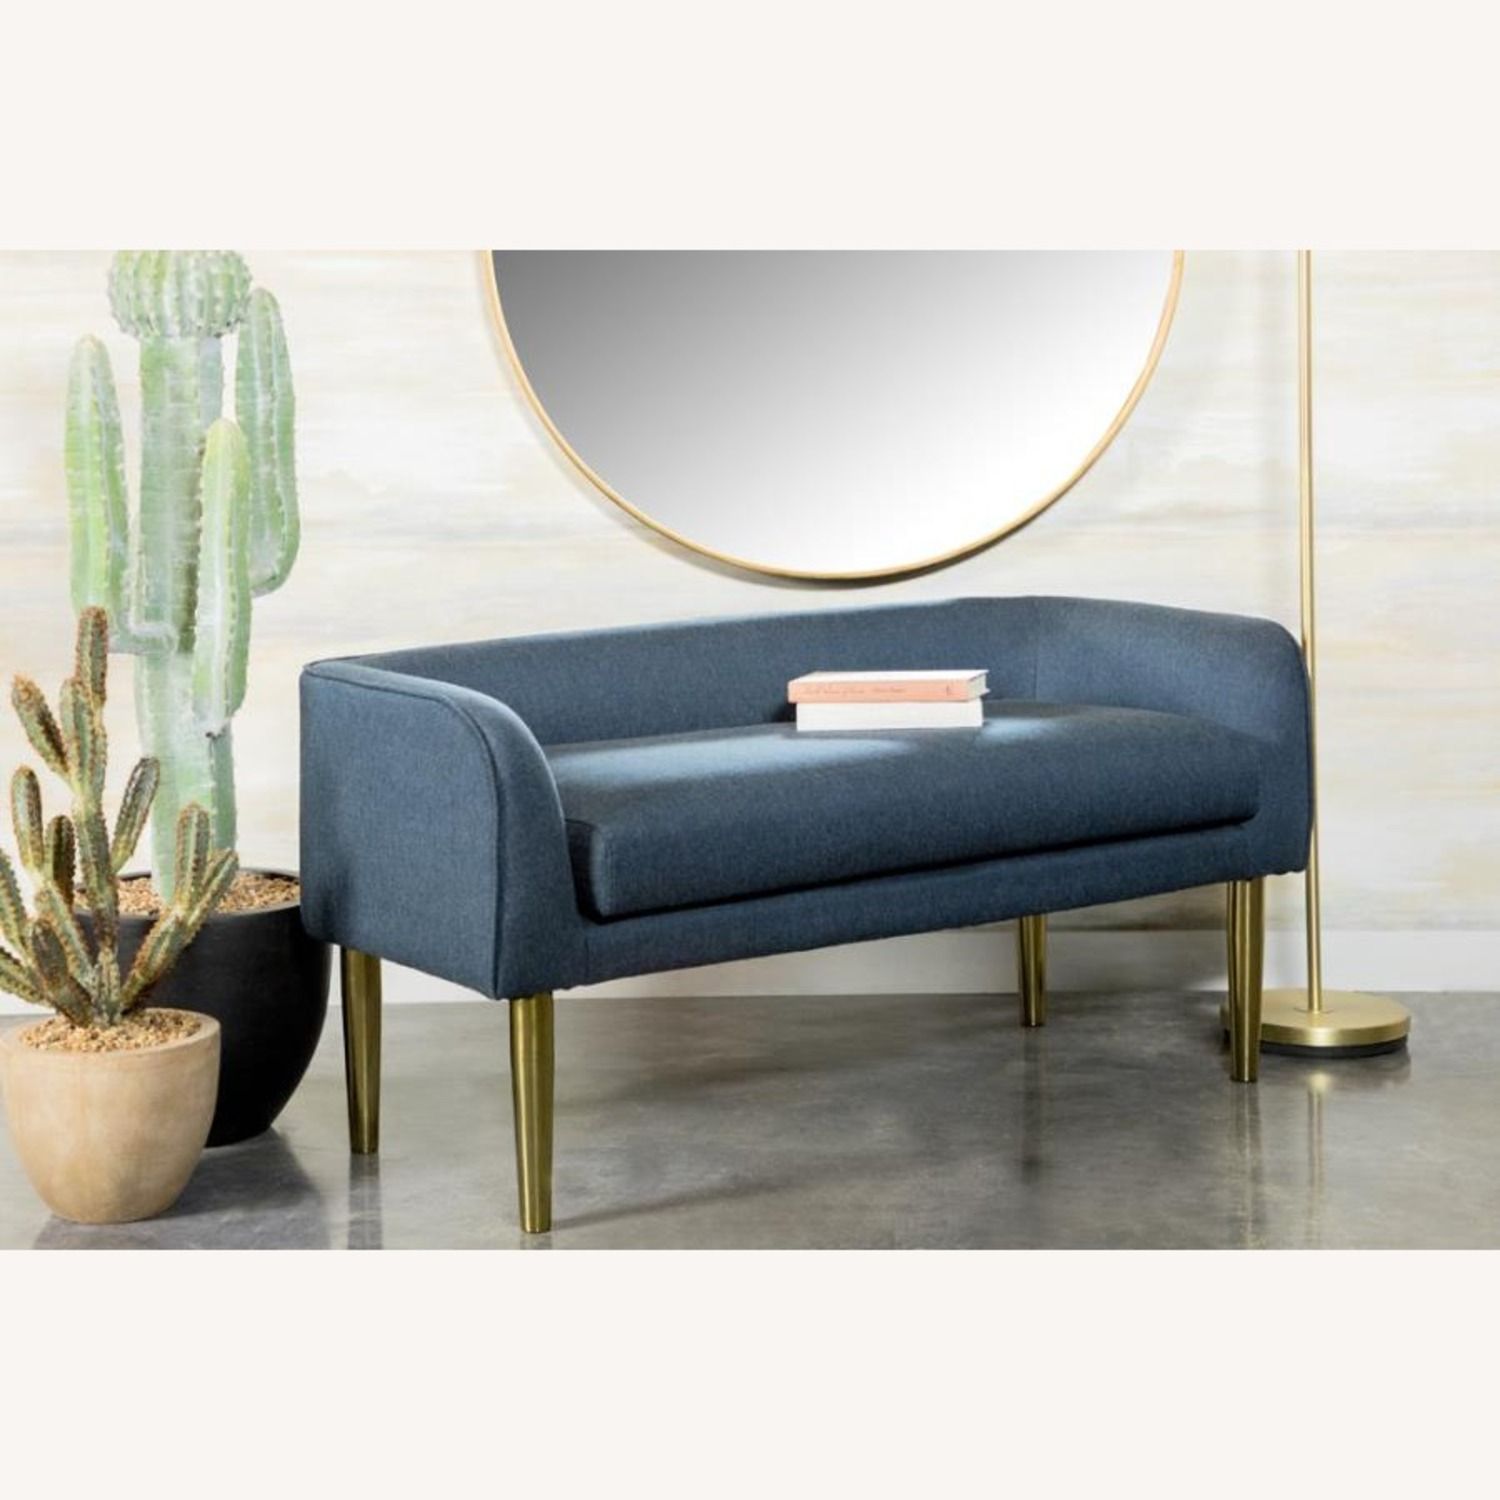 Bench In Blue Woven Fabric W/ Tapered Legs - image-4